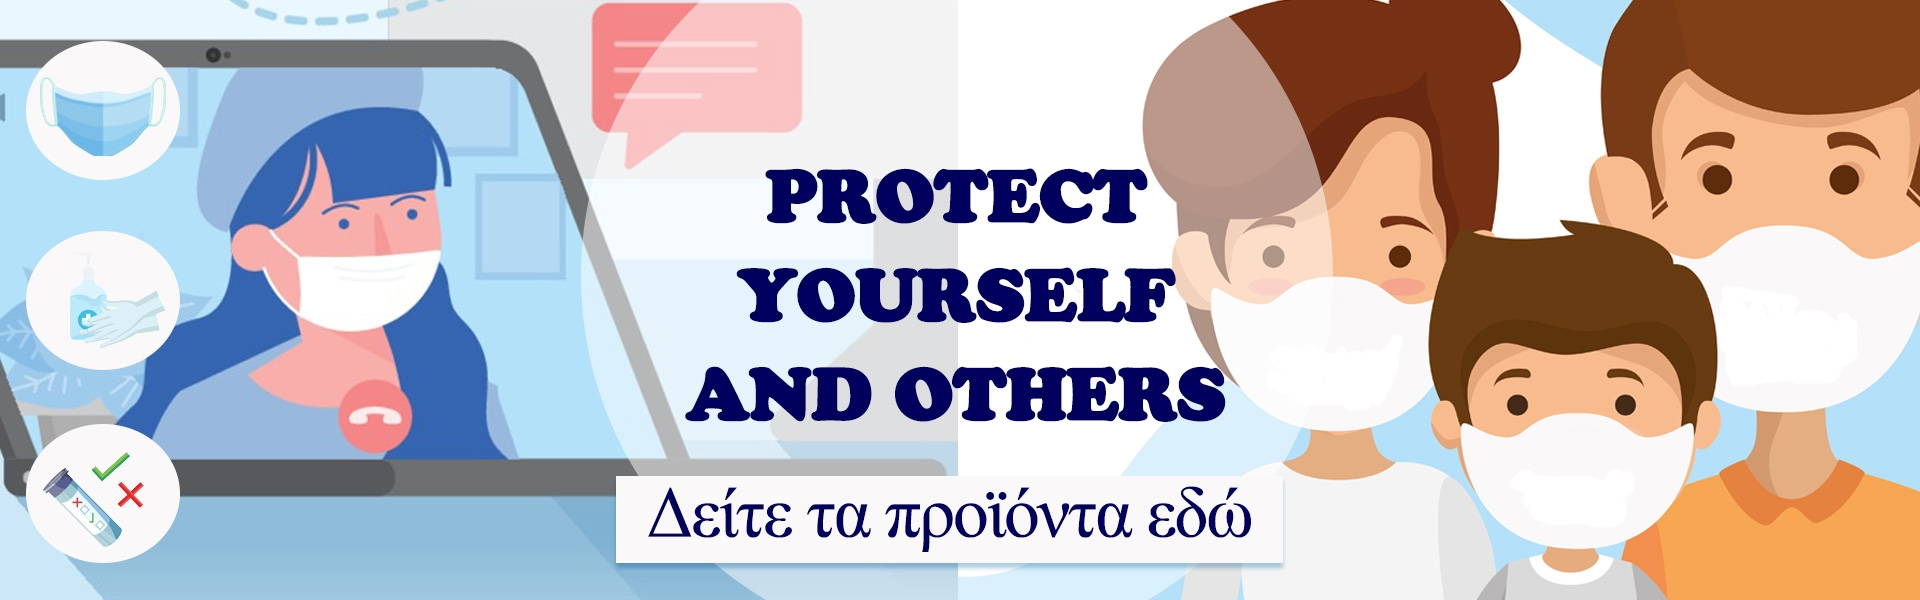 protect yourrself